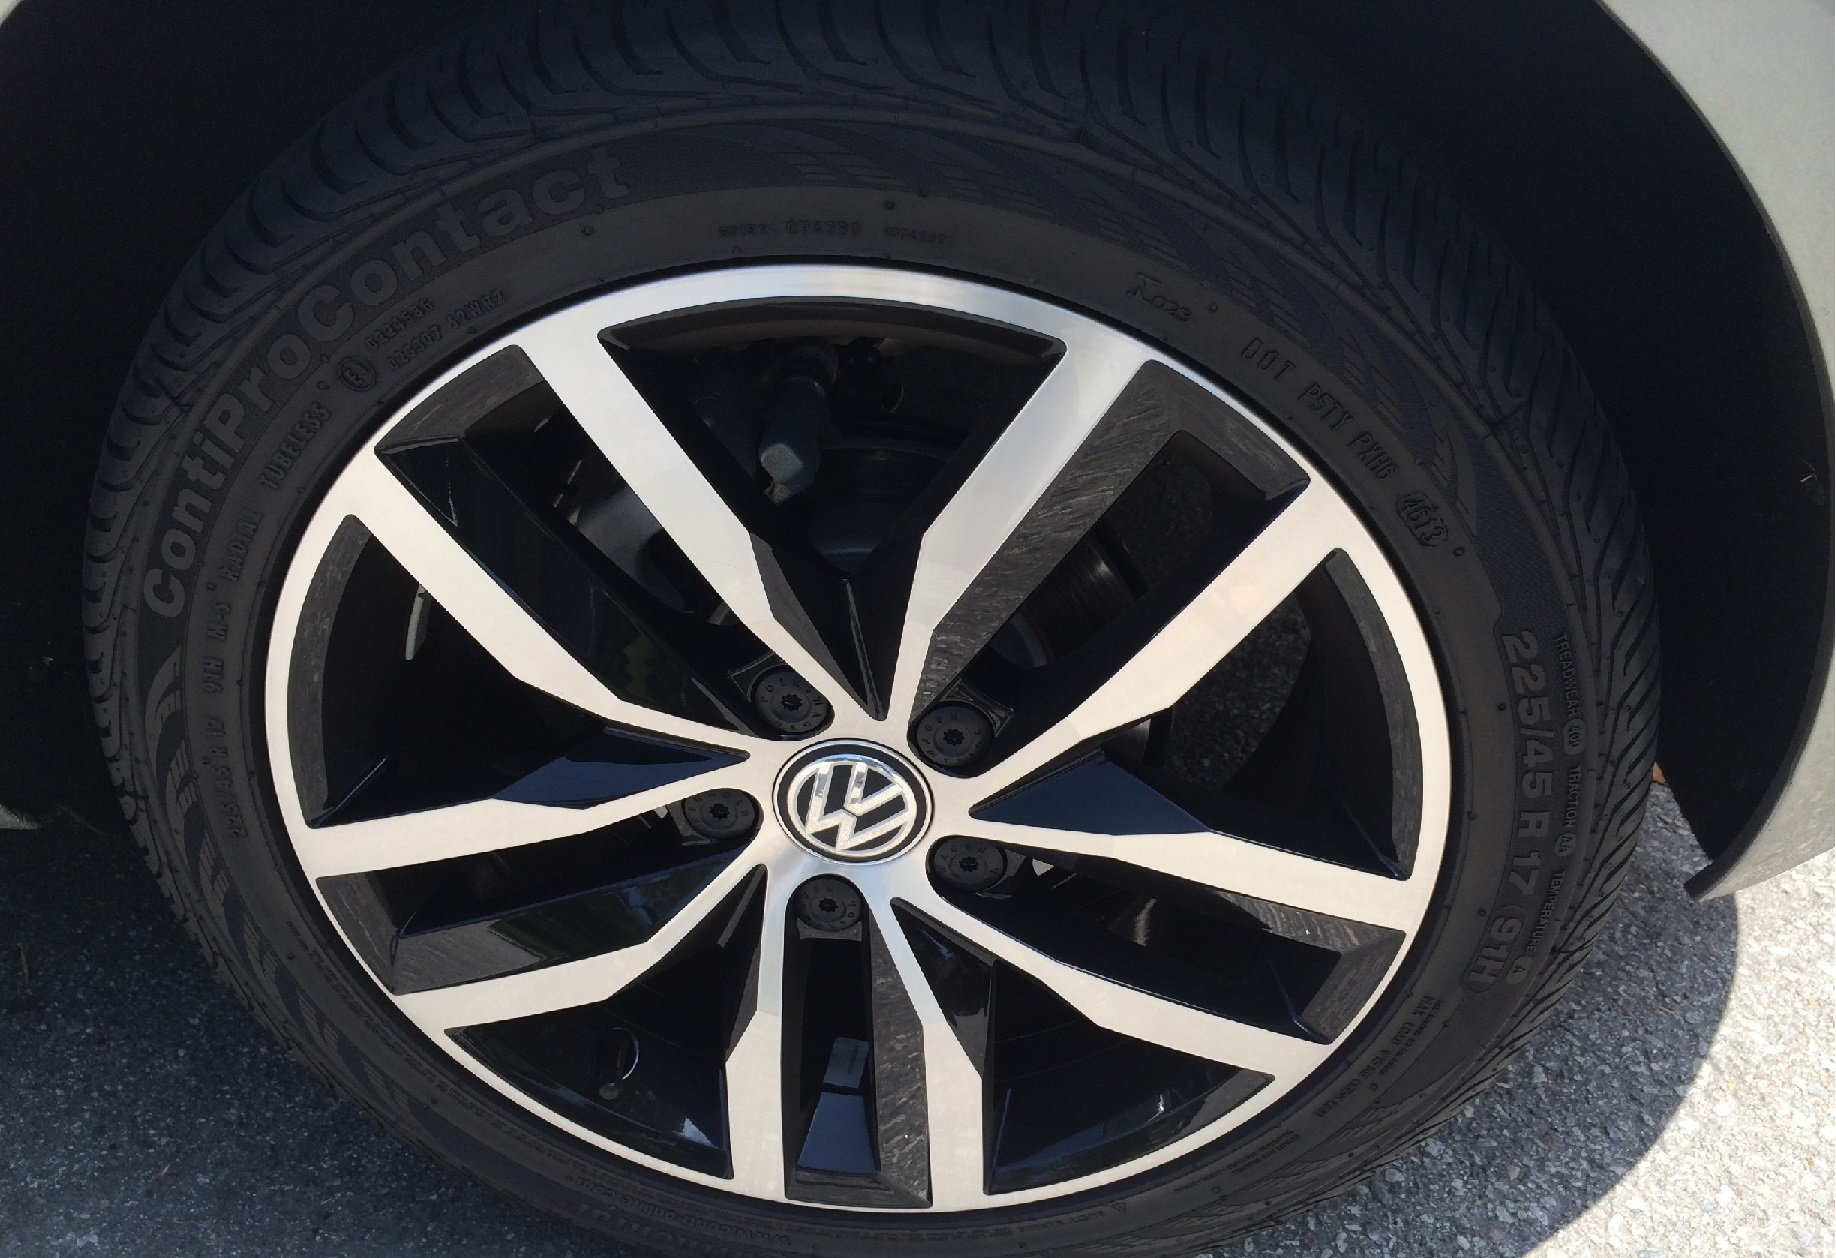 Volkswagen Golf TDI Wheel